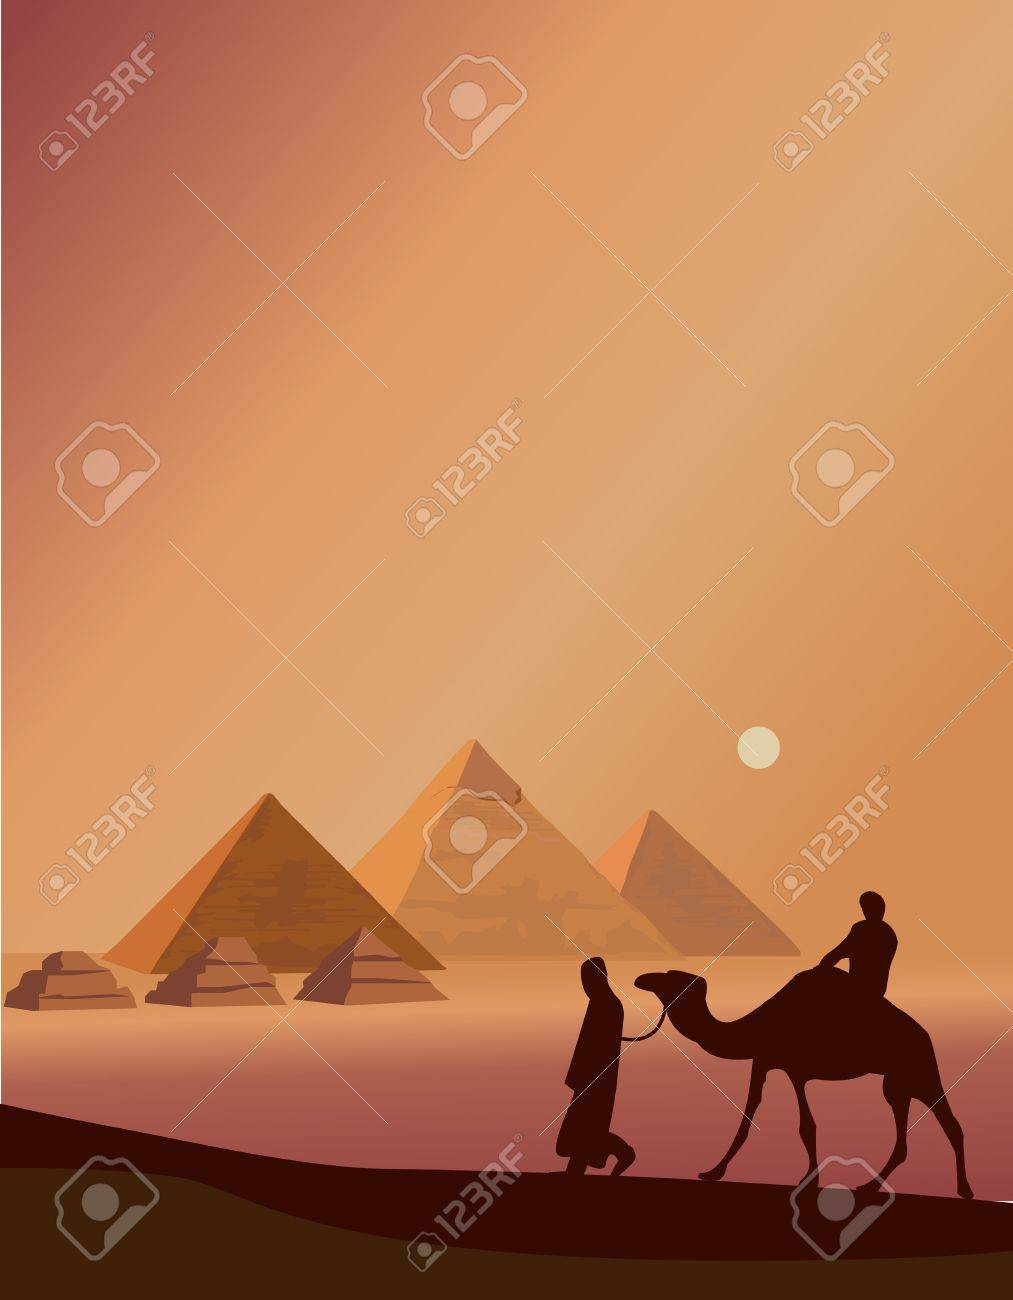 Background illustration with bedouins and the pyramids of Giza - 10862765